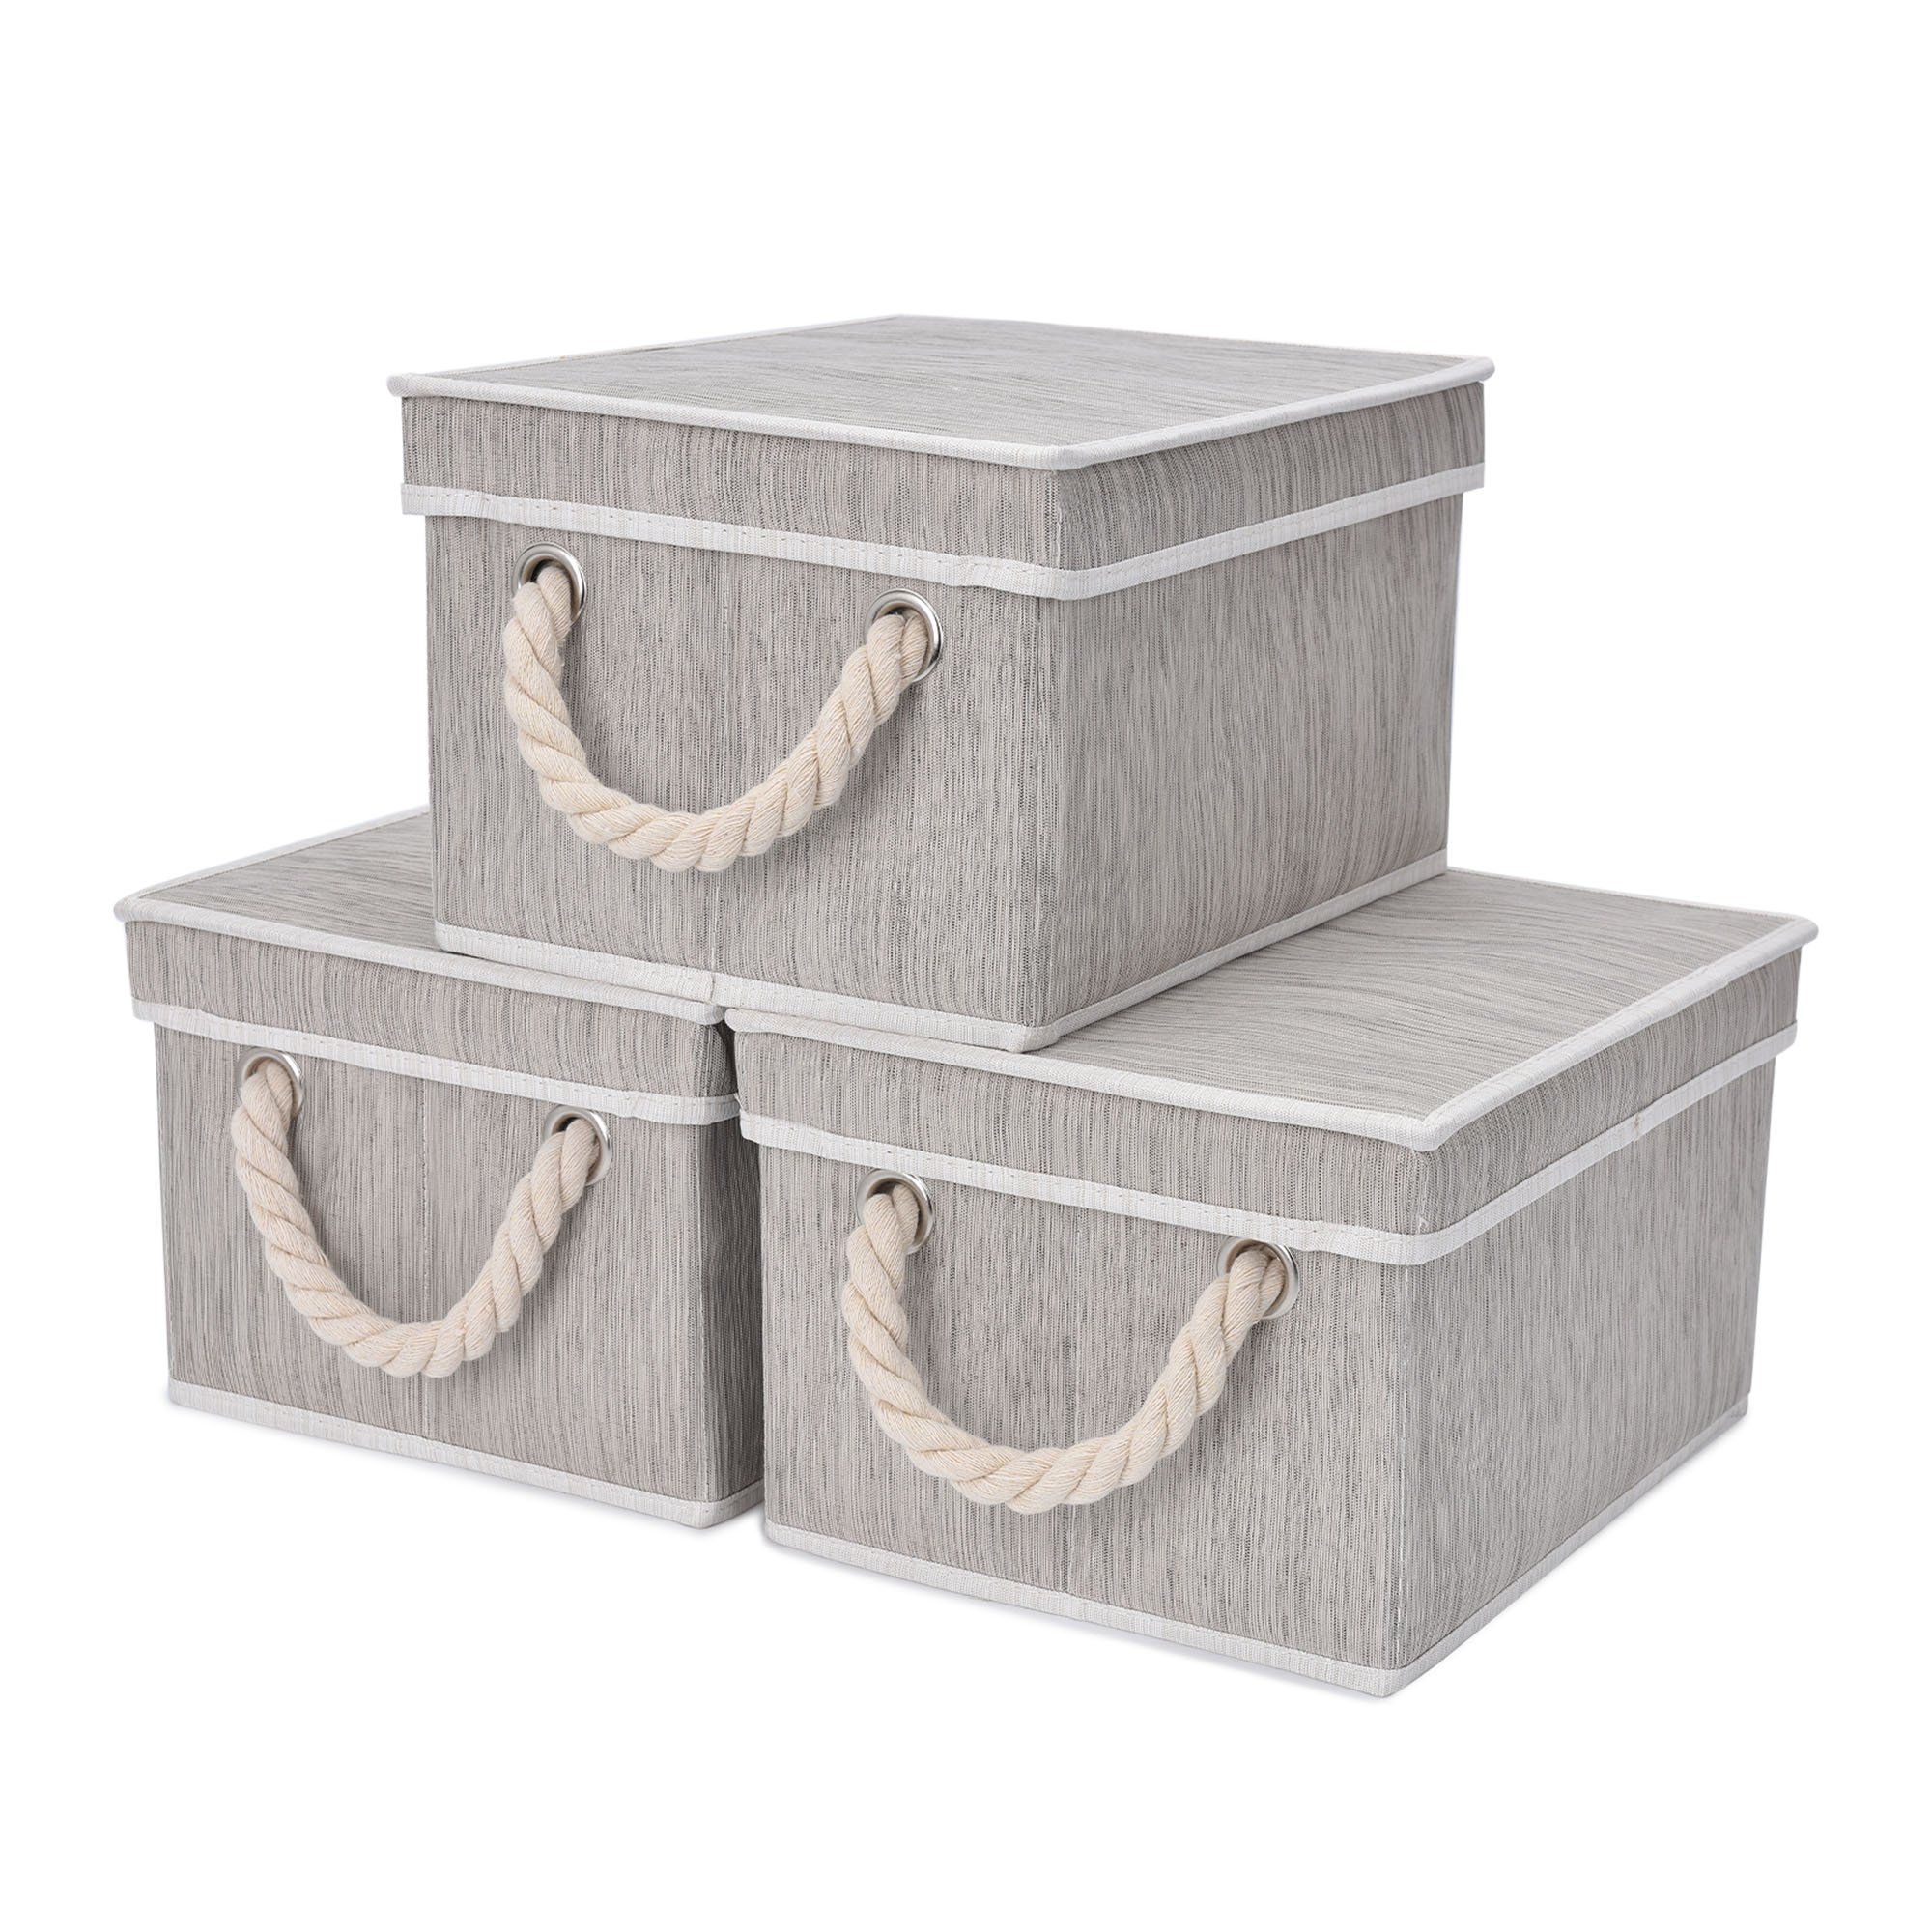 StorageWorks Storage Bins with Lid and Cotton Rope Handles, Foldable Storage Basket, Gray, Bamboo Style, 3-Pack, Large,14.4x10.0x8.5 inches (LxWxH)